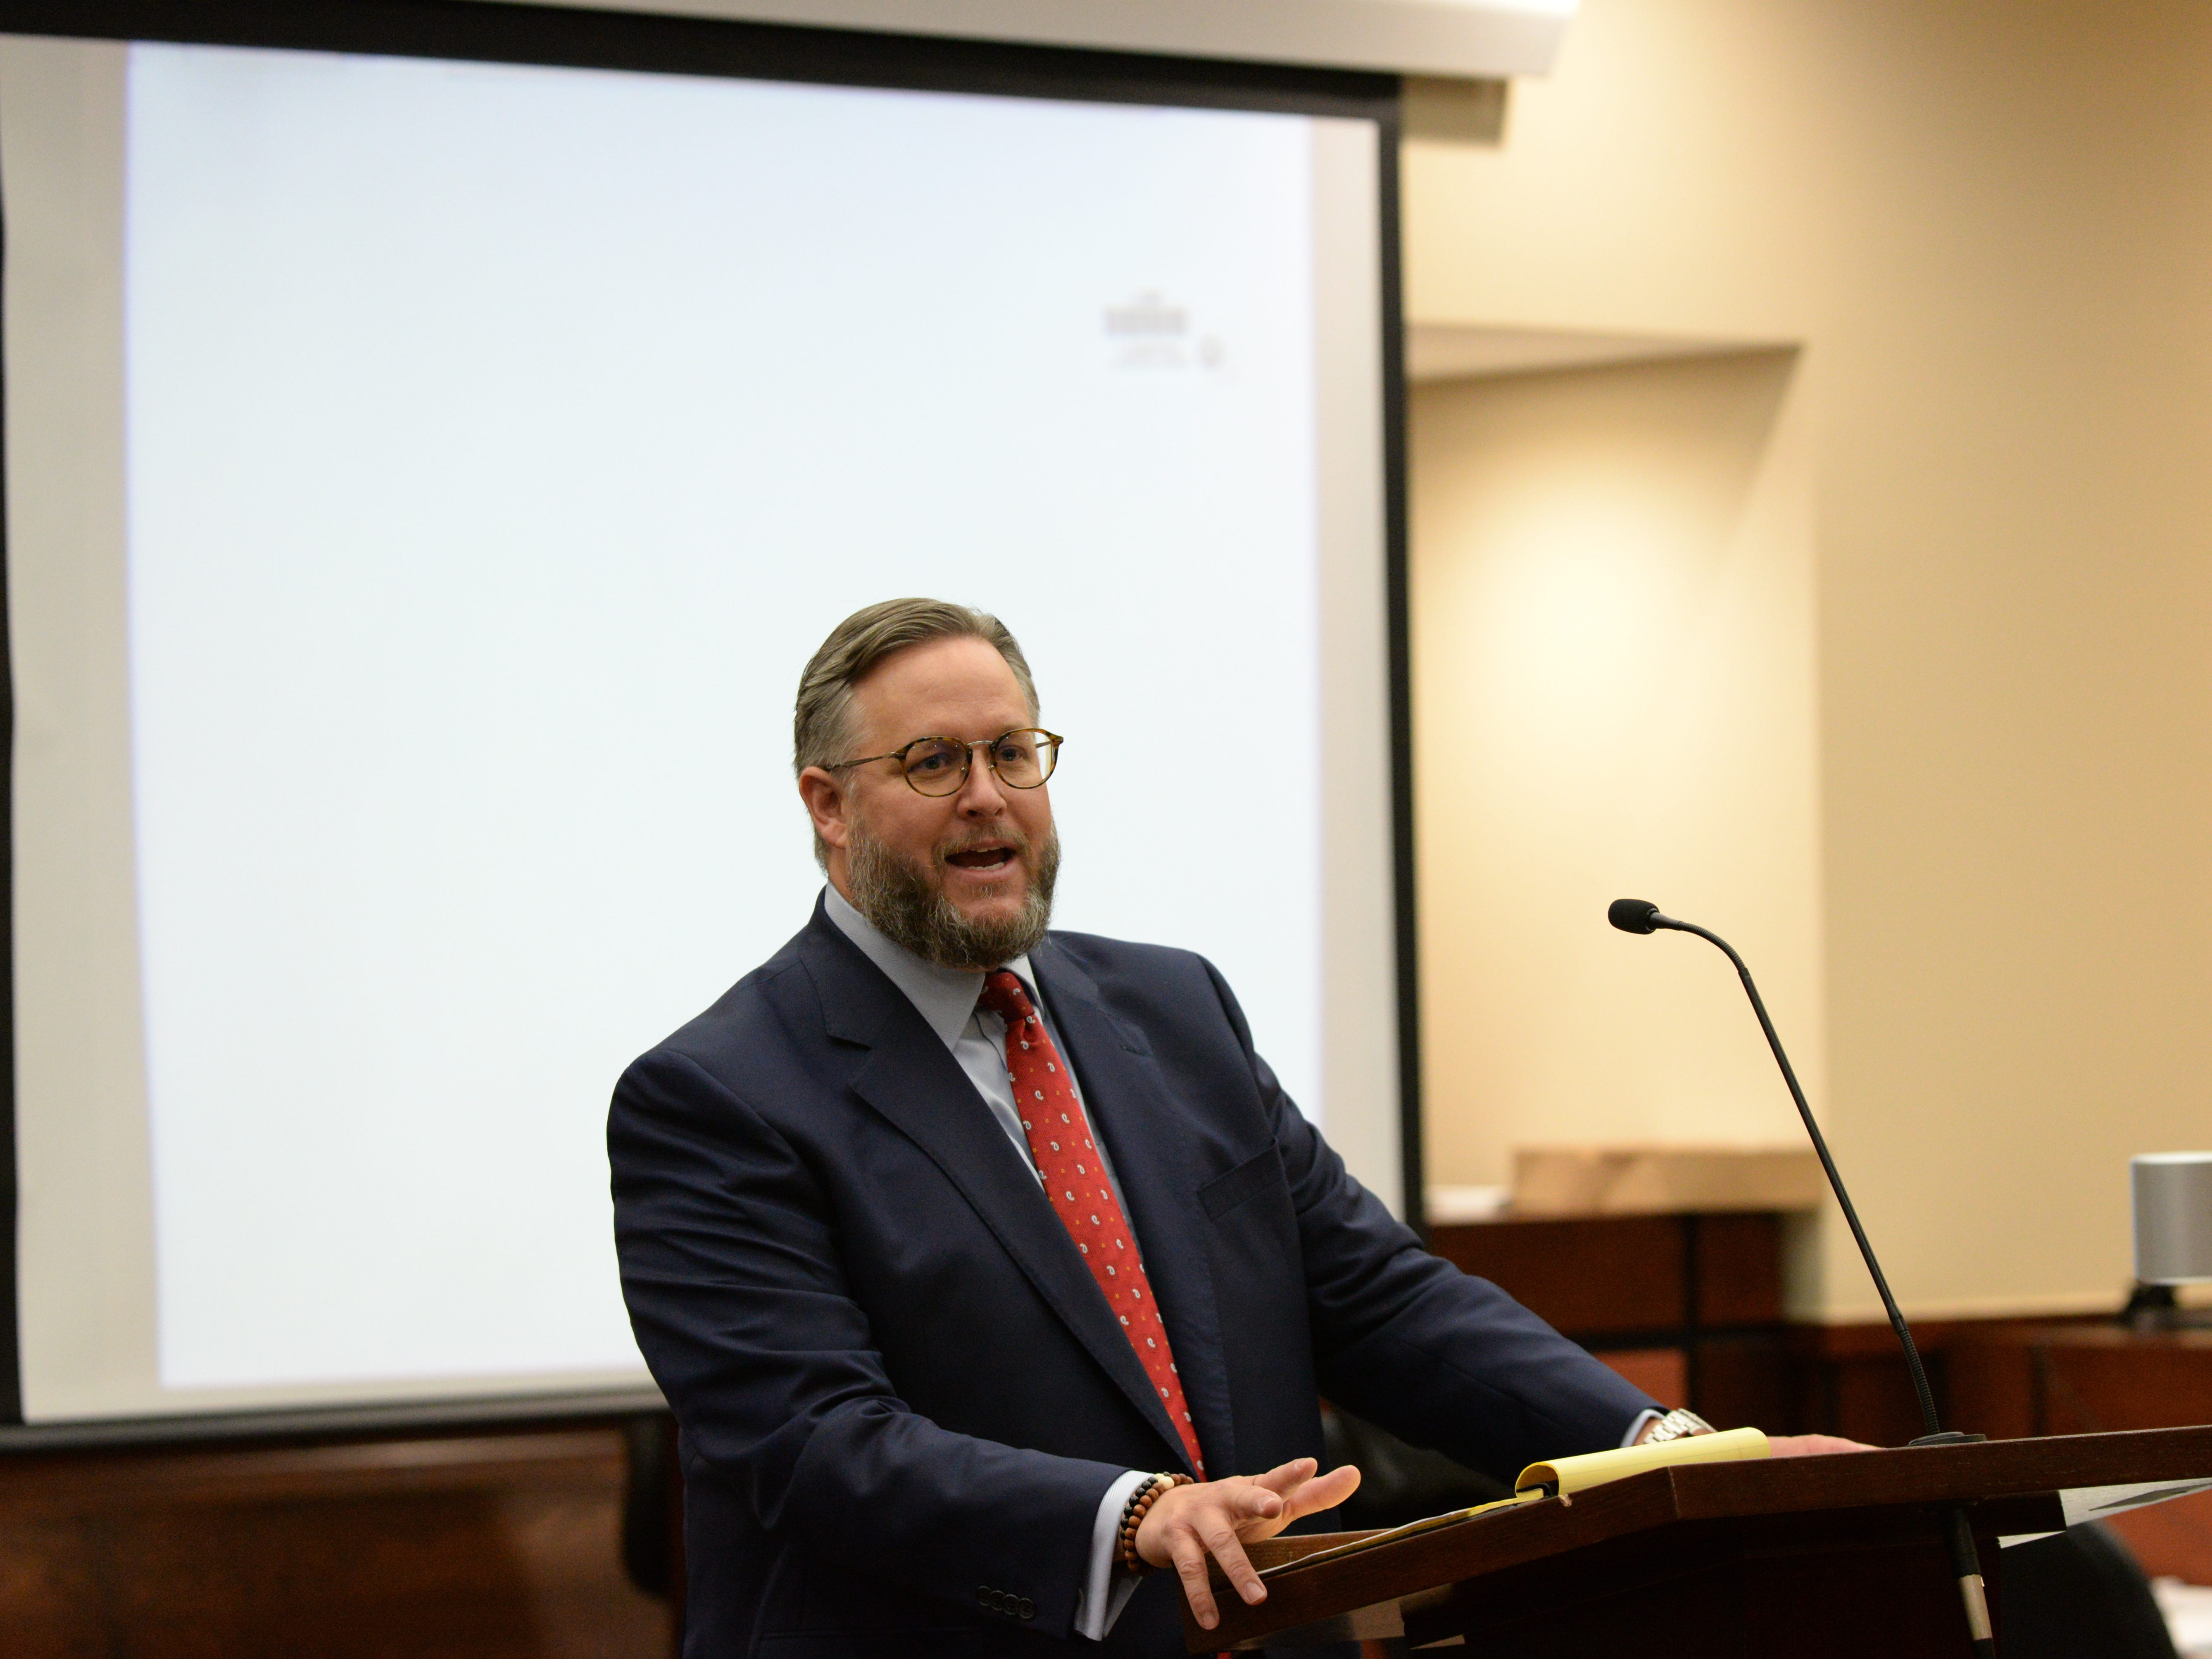 Attorney for Denise Williams Ethan Way gives his closing arguments during the trial of Denise Williams for the murder of her husband Mike Williams at the Leon County Courthouse Friday, Dec. 14, 2018.